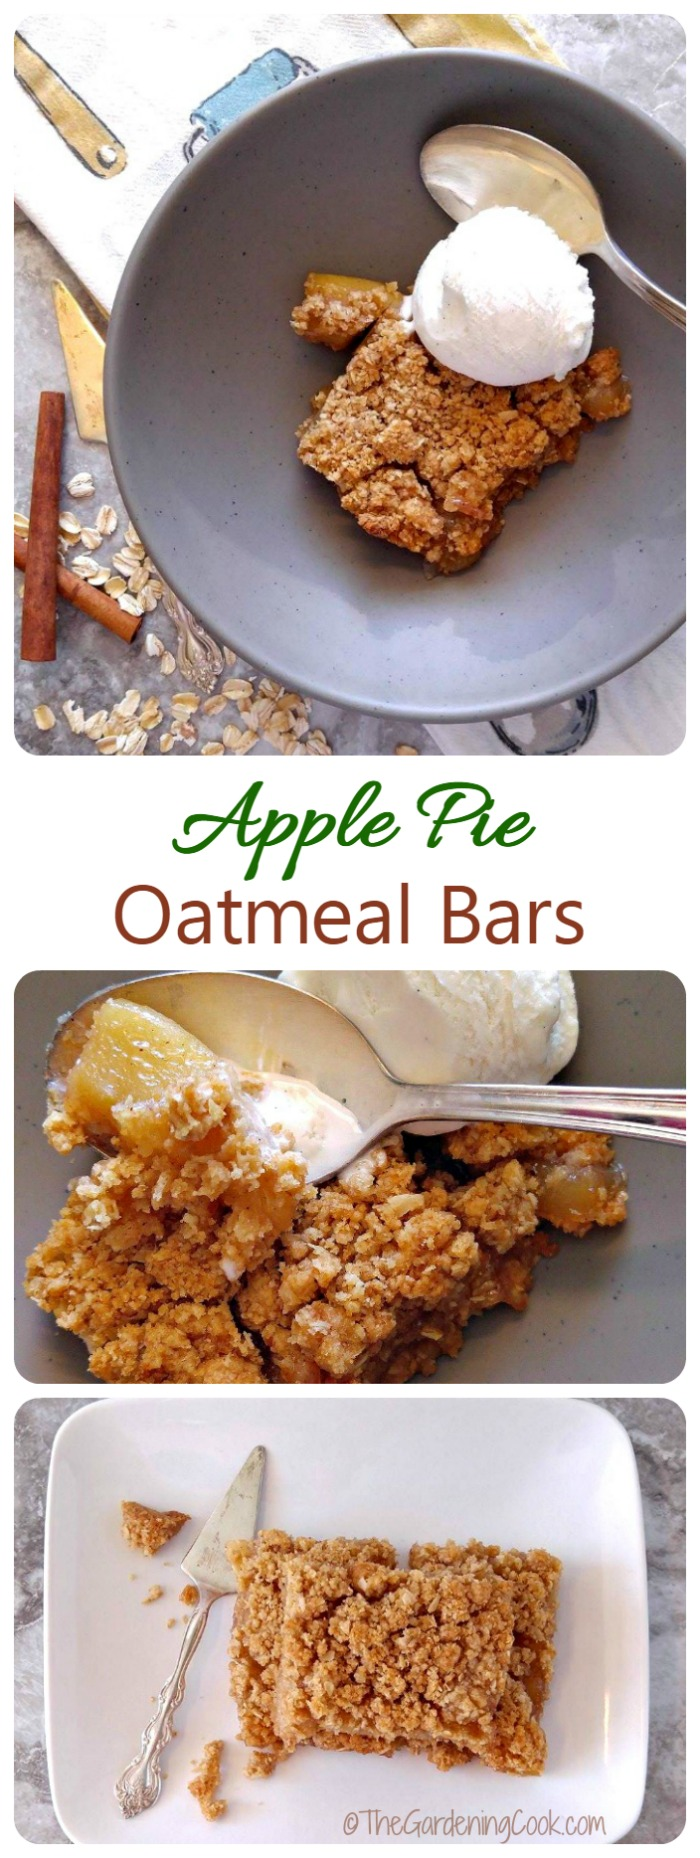 These apple pie oatmeal bars are perfect for fall. They taste like grandma's apple pie without the crust. So yummy! #Oatober #IC #ad